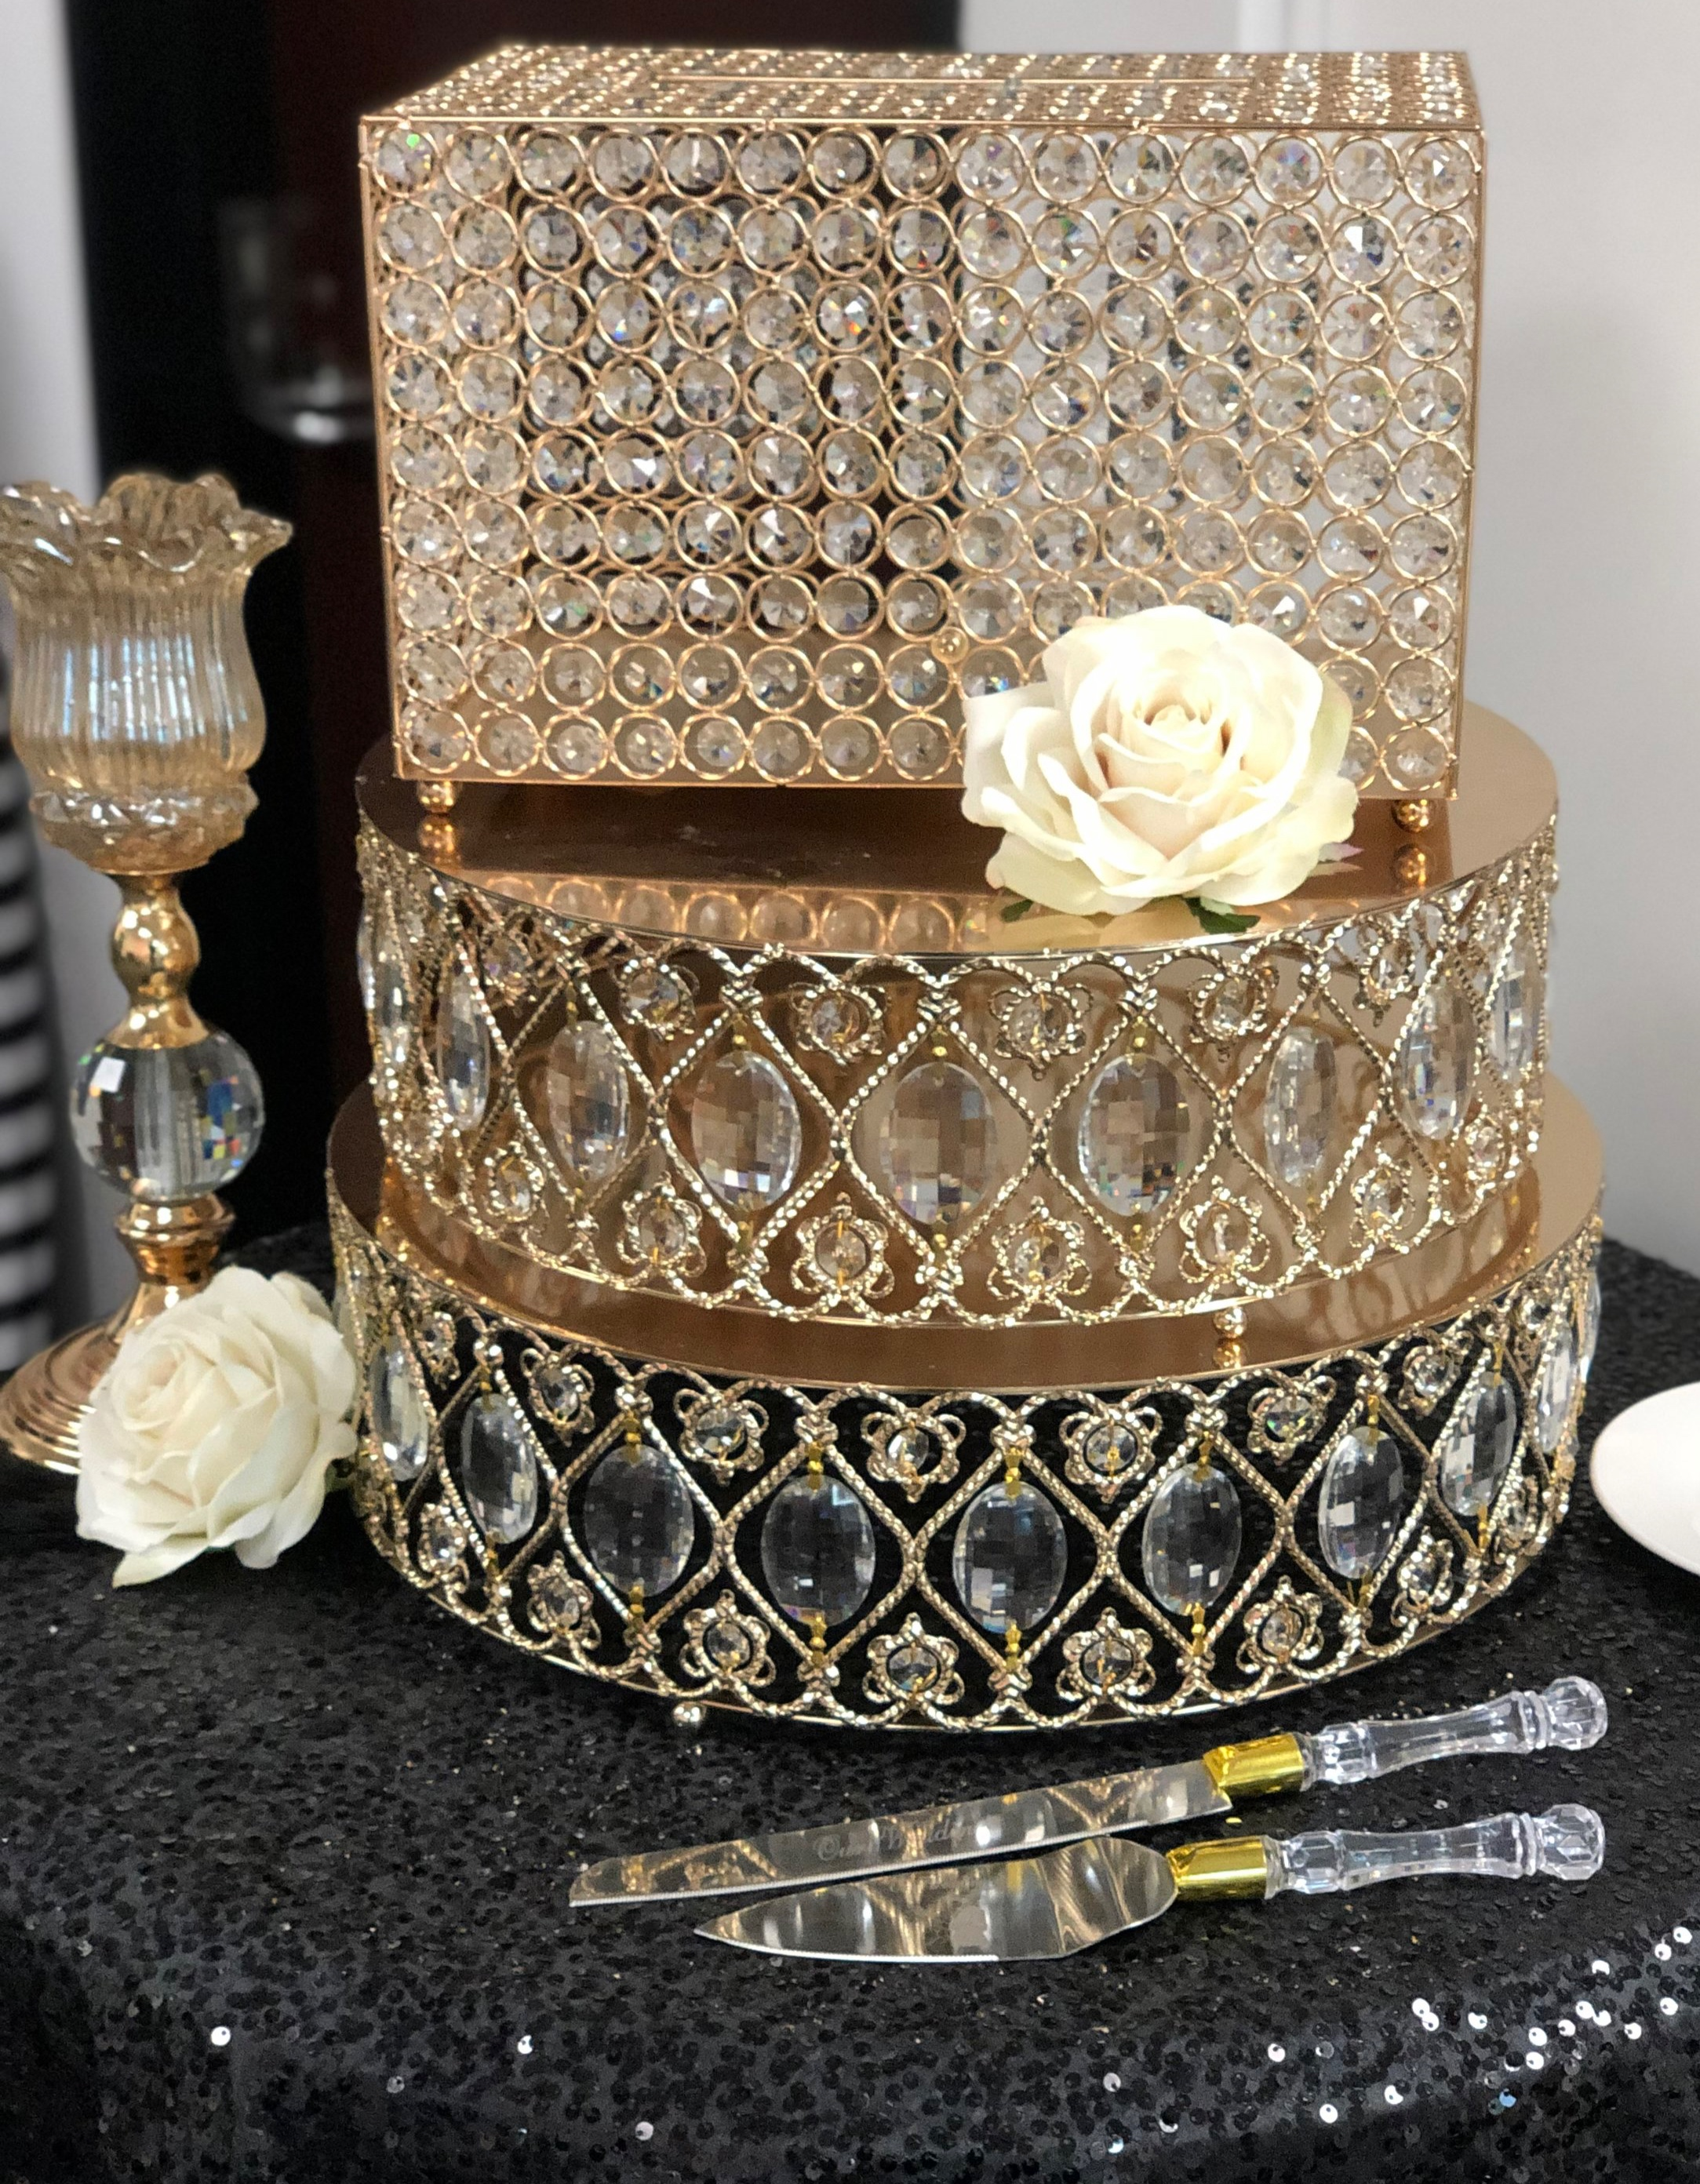 Large Gold Crystal Cake Stands